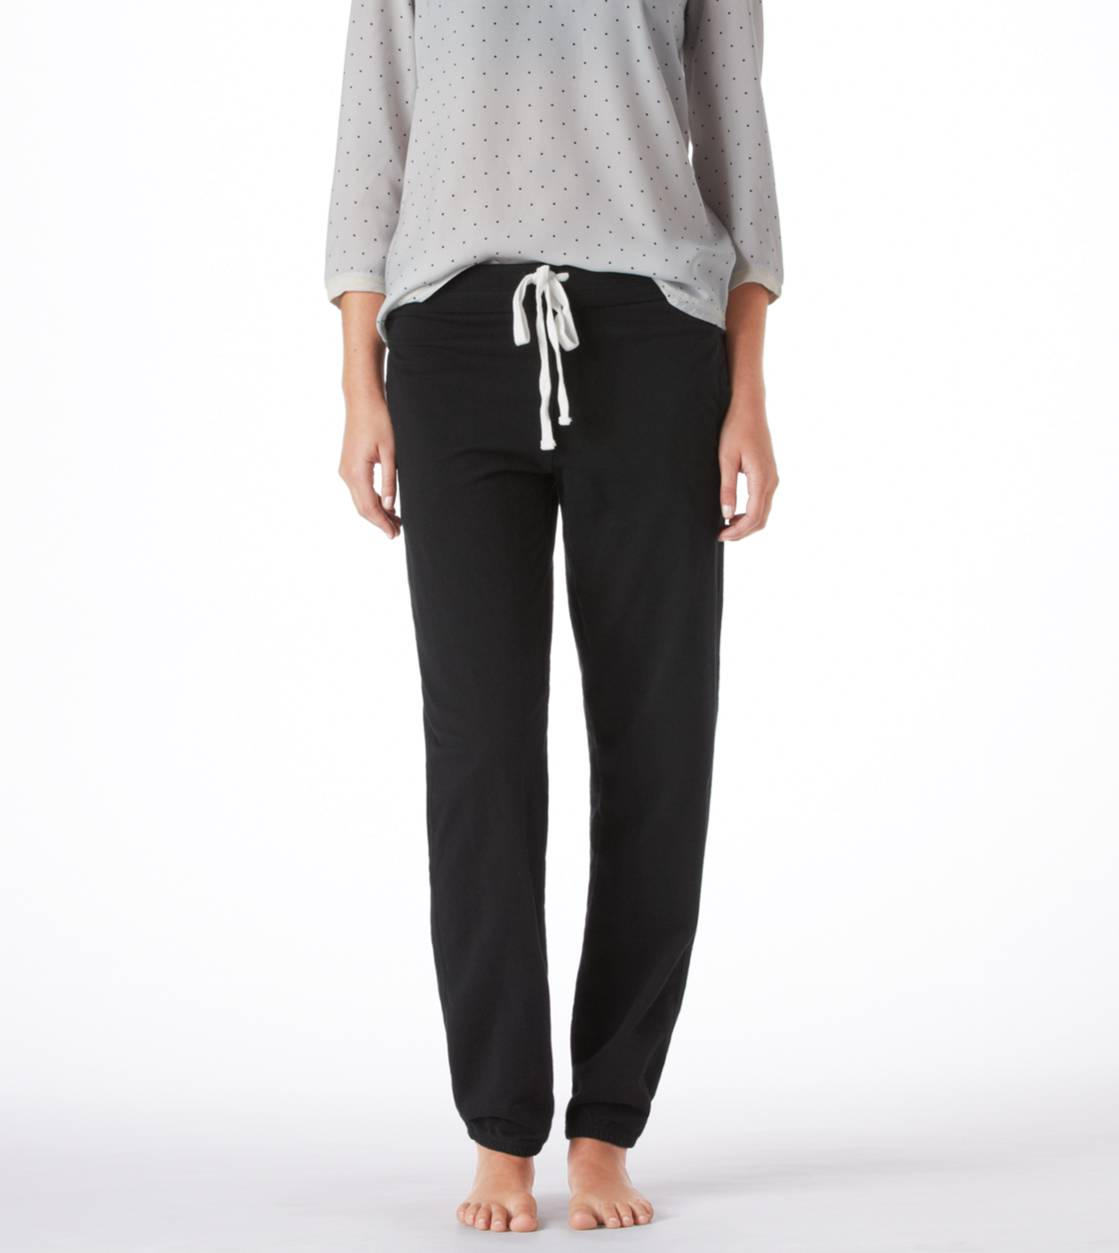 True Black Aerie Boyfriend Sweatpant